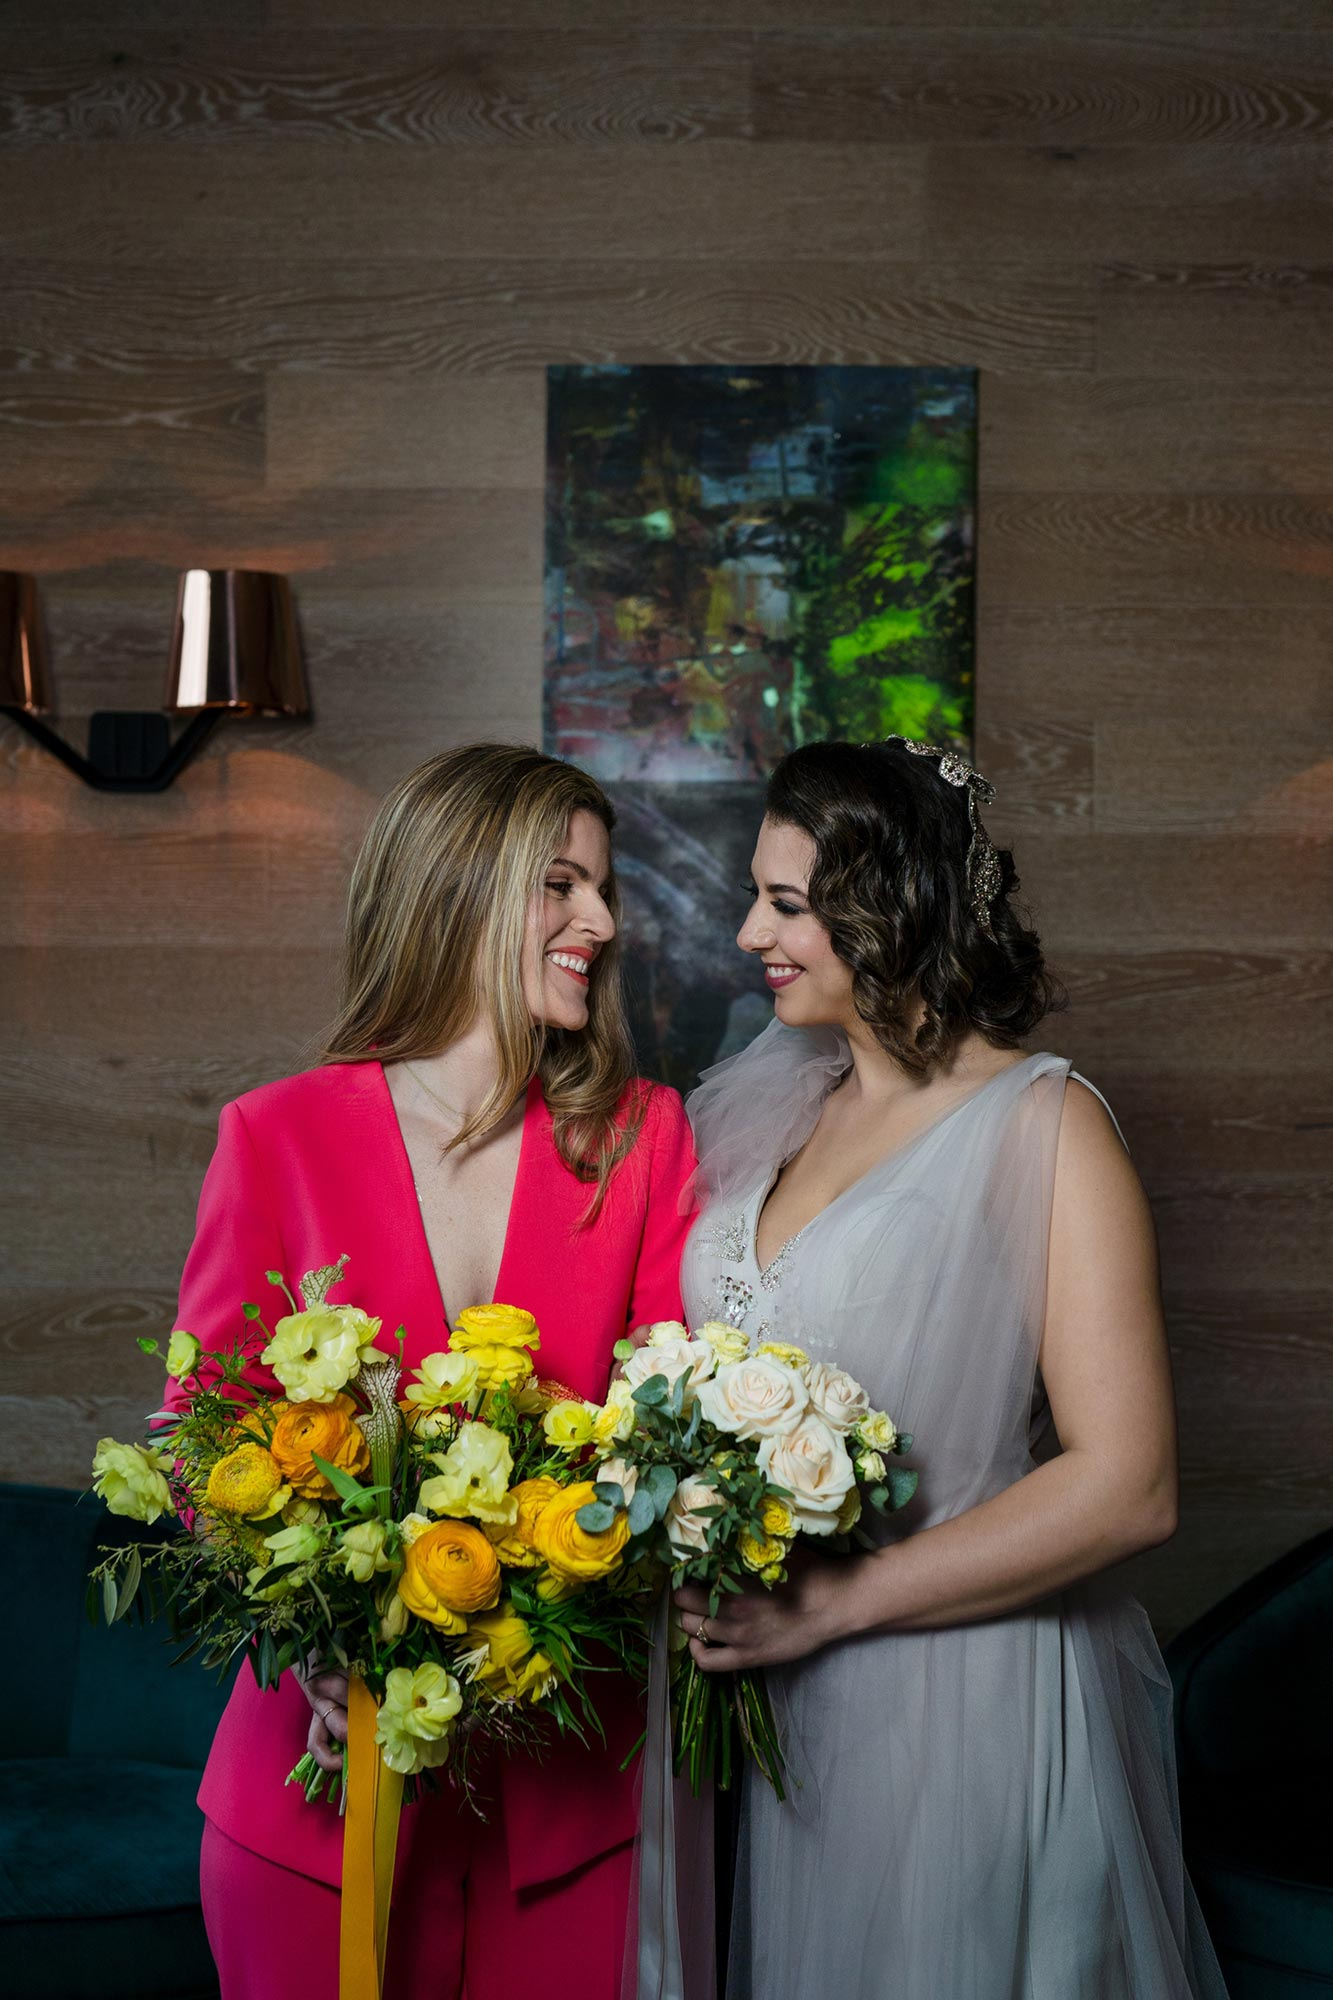 Bright Neon Wedding Inspiration at The Bowery Hotel NYC showing couple holding yellow bouquets JC Lemon Photography